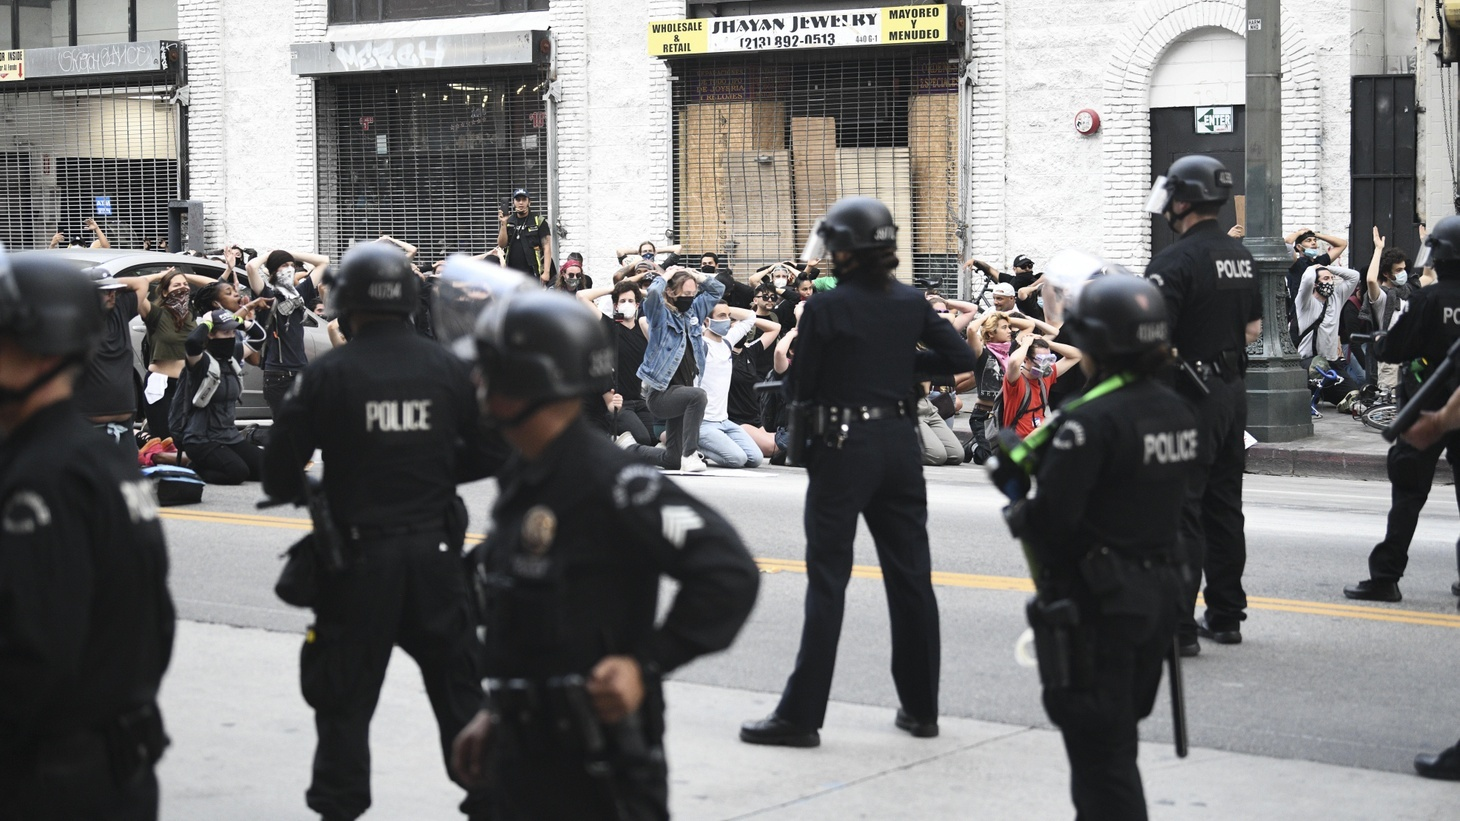 Hundreds of people prepare to get arrested for violating curfew while protesting the death of George Floyd in downtown Los Angeles, Calif. on June 2, 2020.